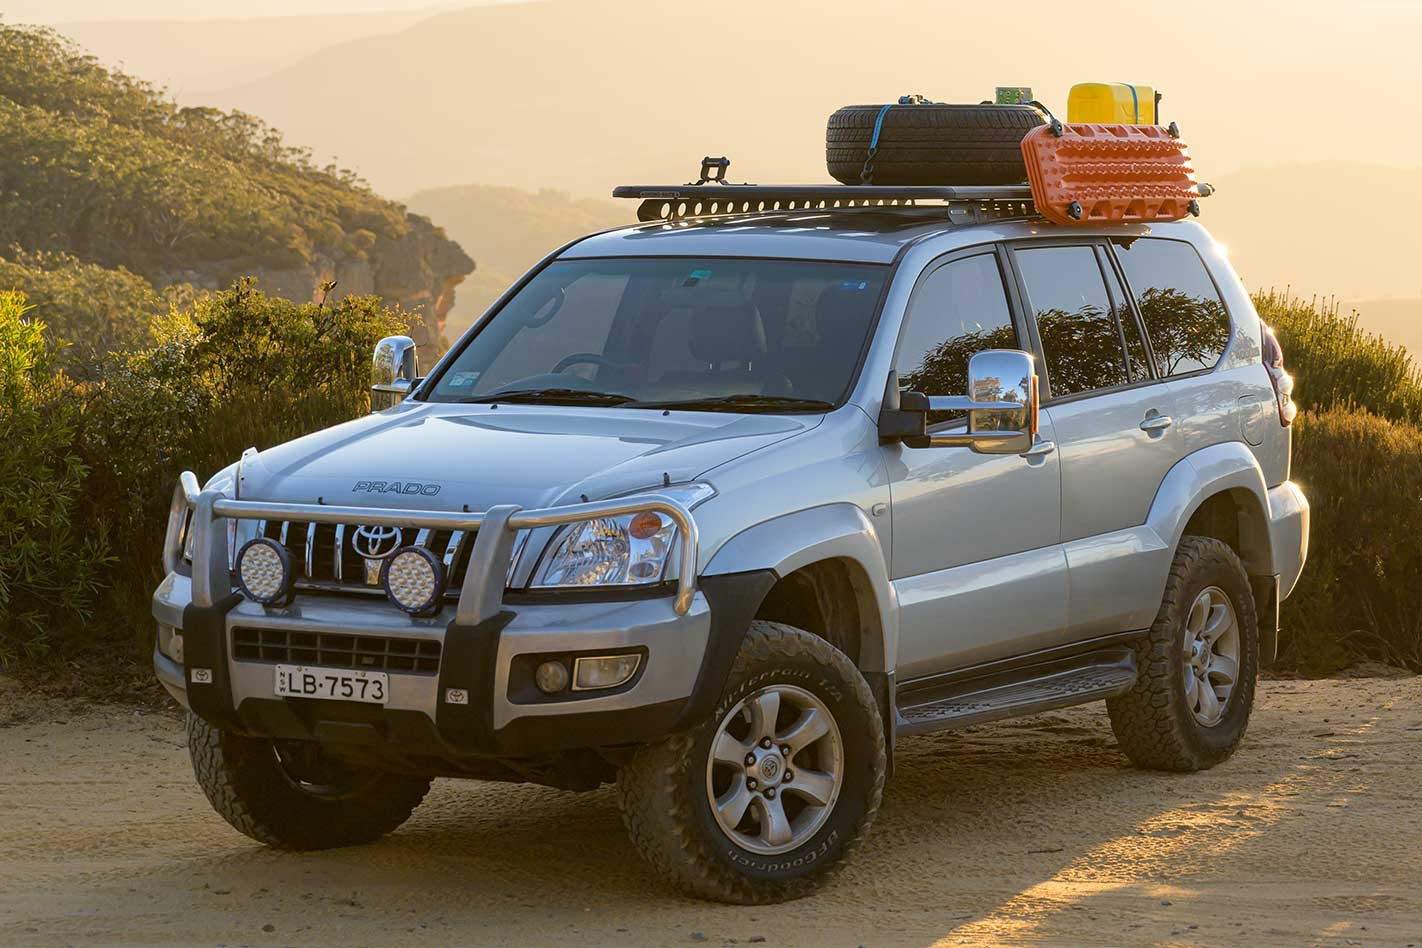 Rhino Rack Pioneer Tray Accessories Review